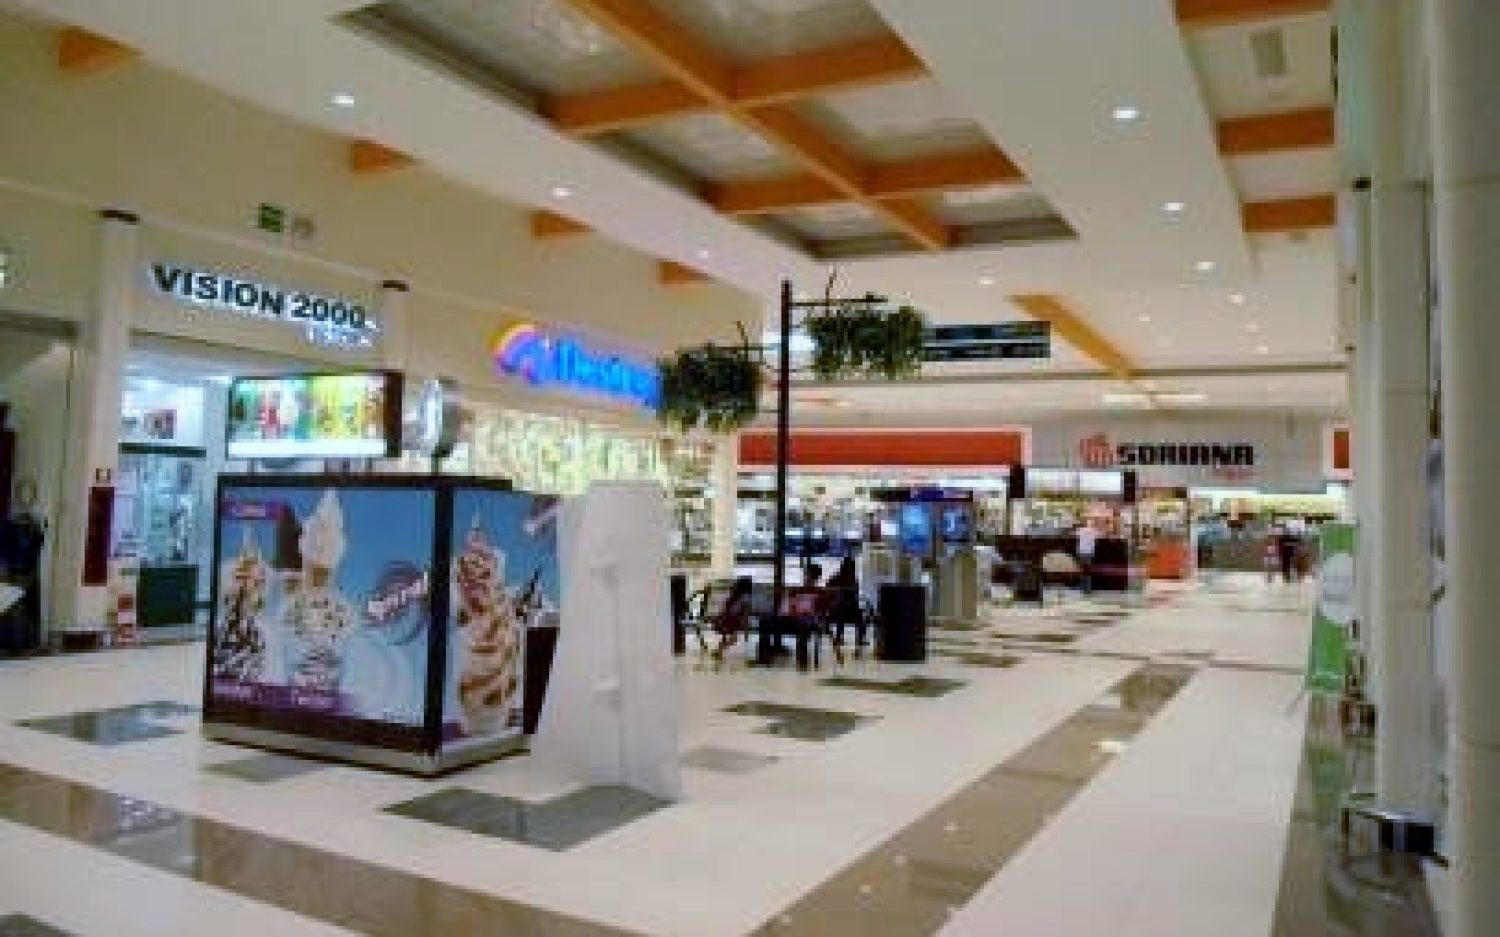 Co-Plaza Sendero Villahermosa (37)